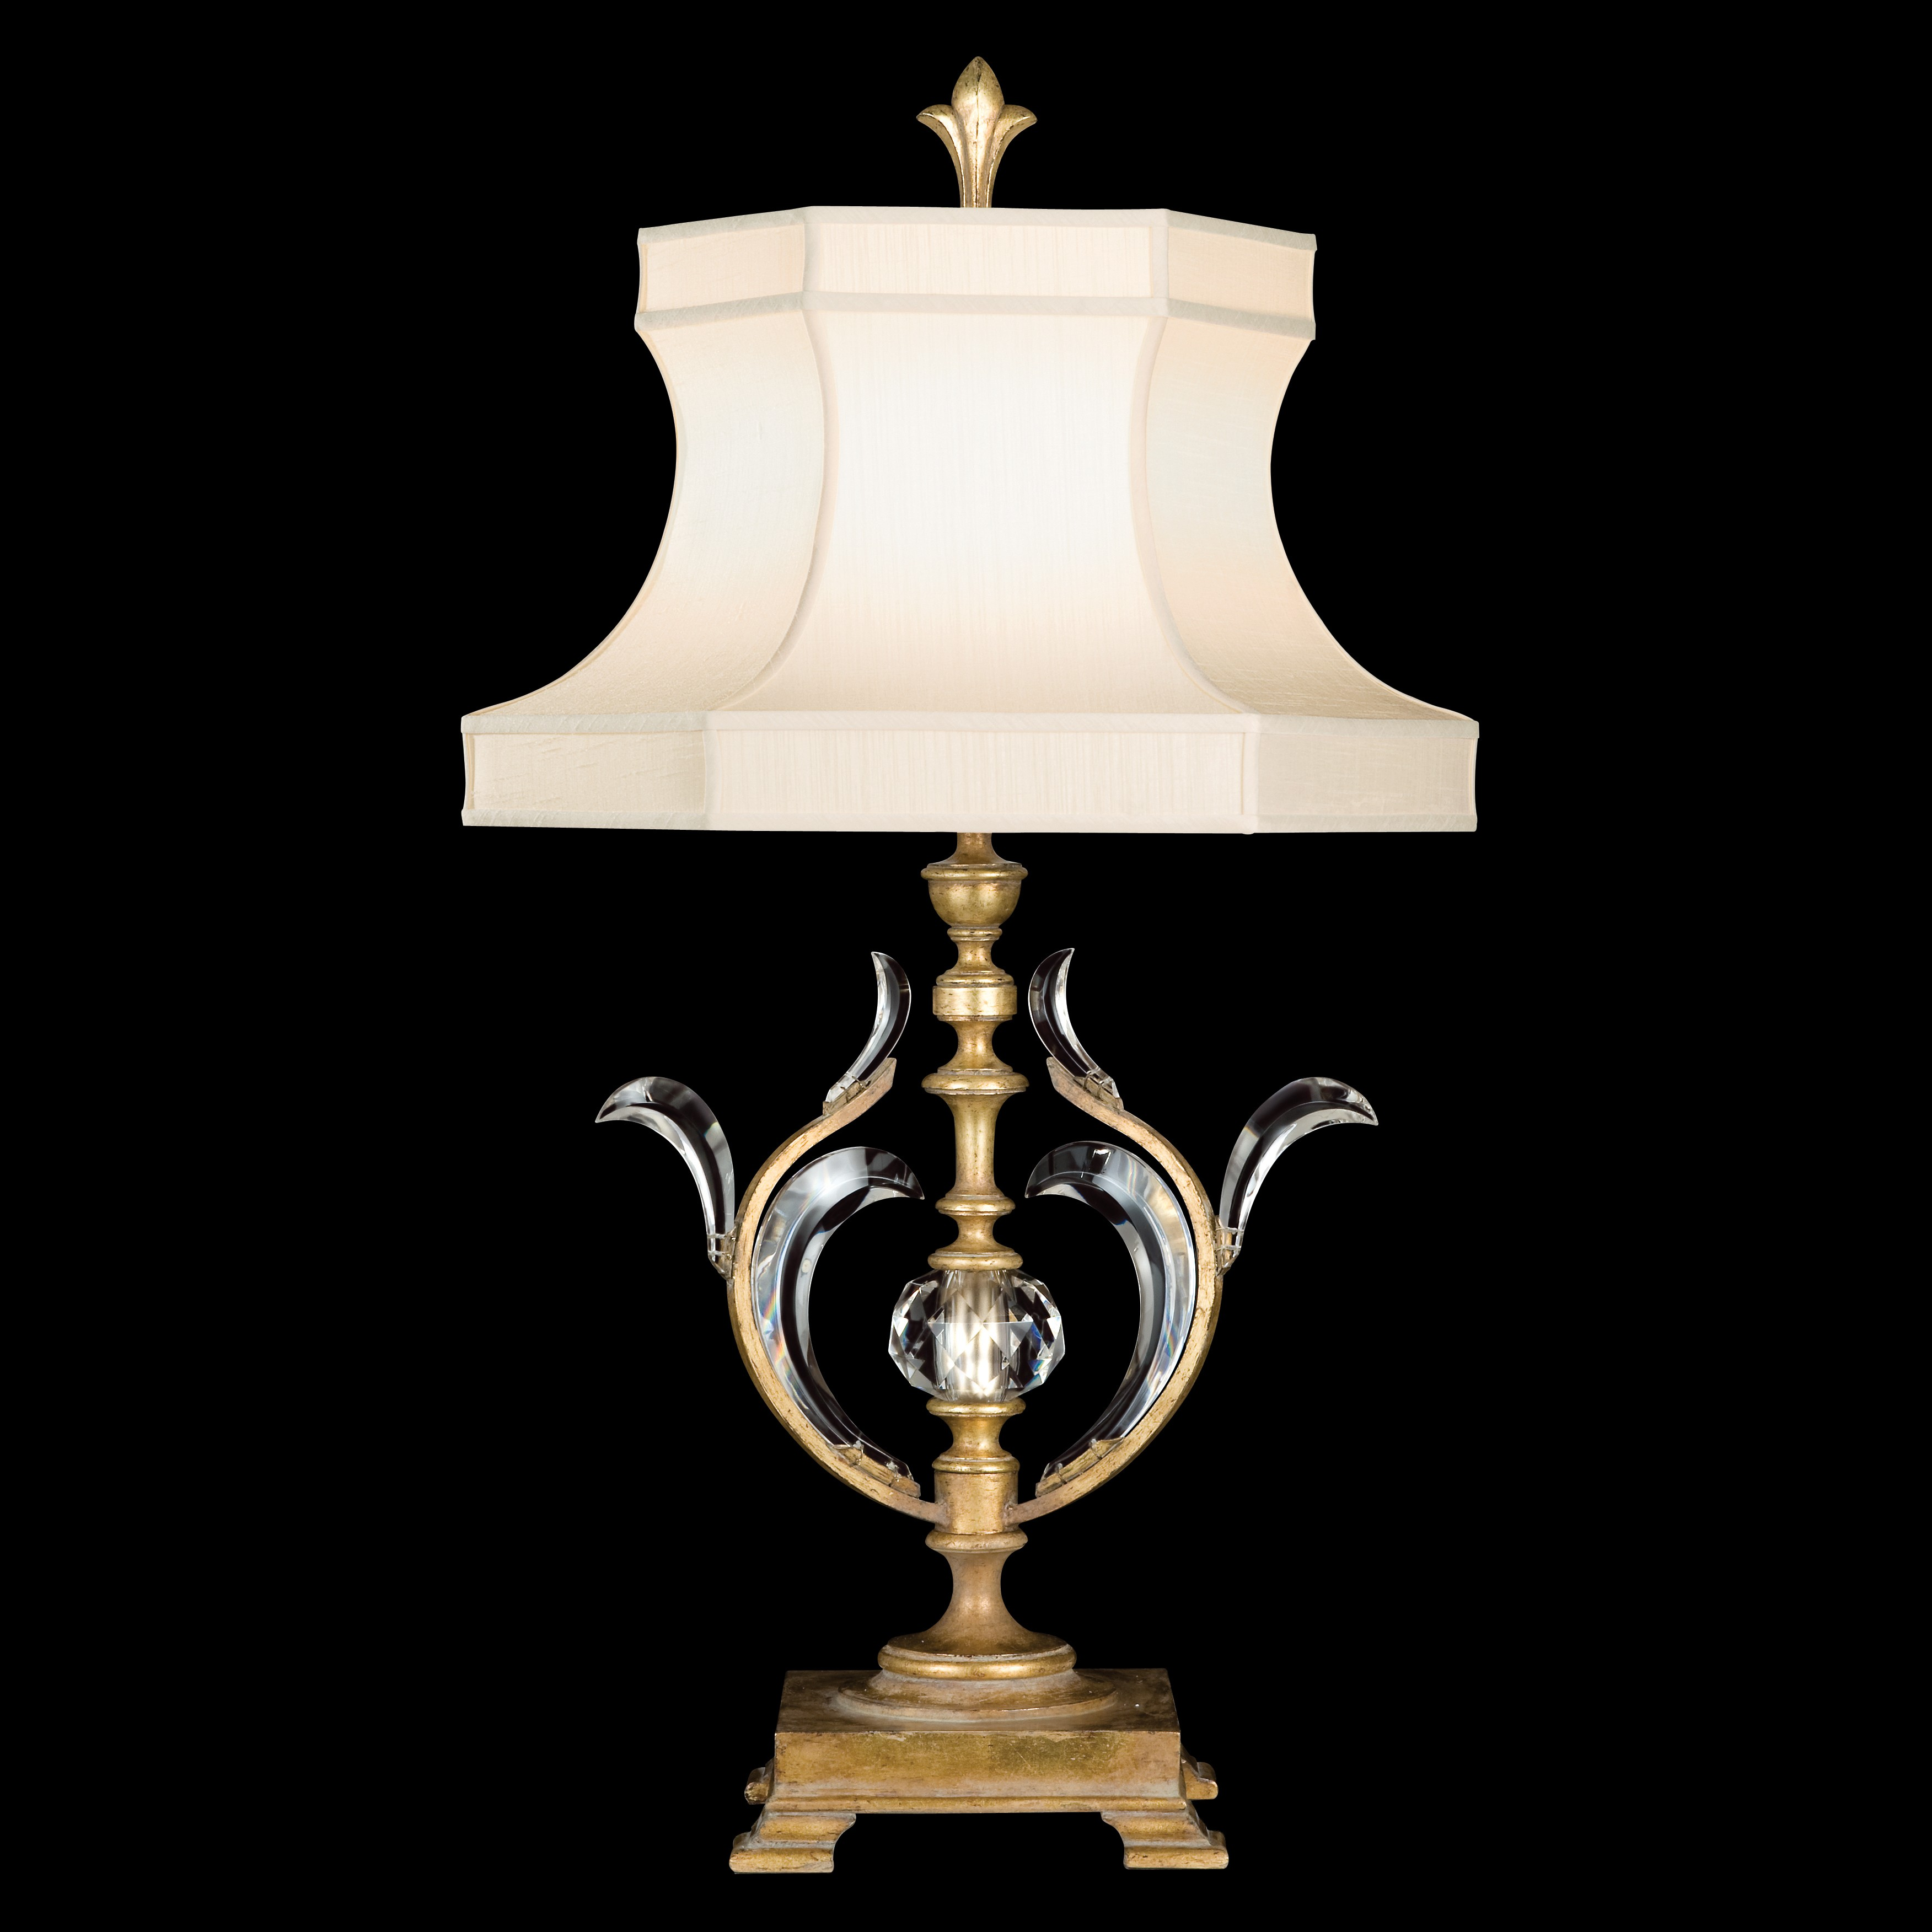 Luxury Table Lamps How To Provide Sophistication To Any Space With Luxury